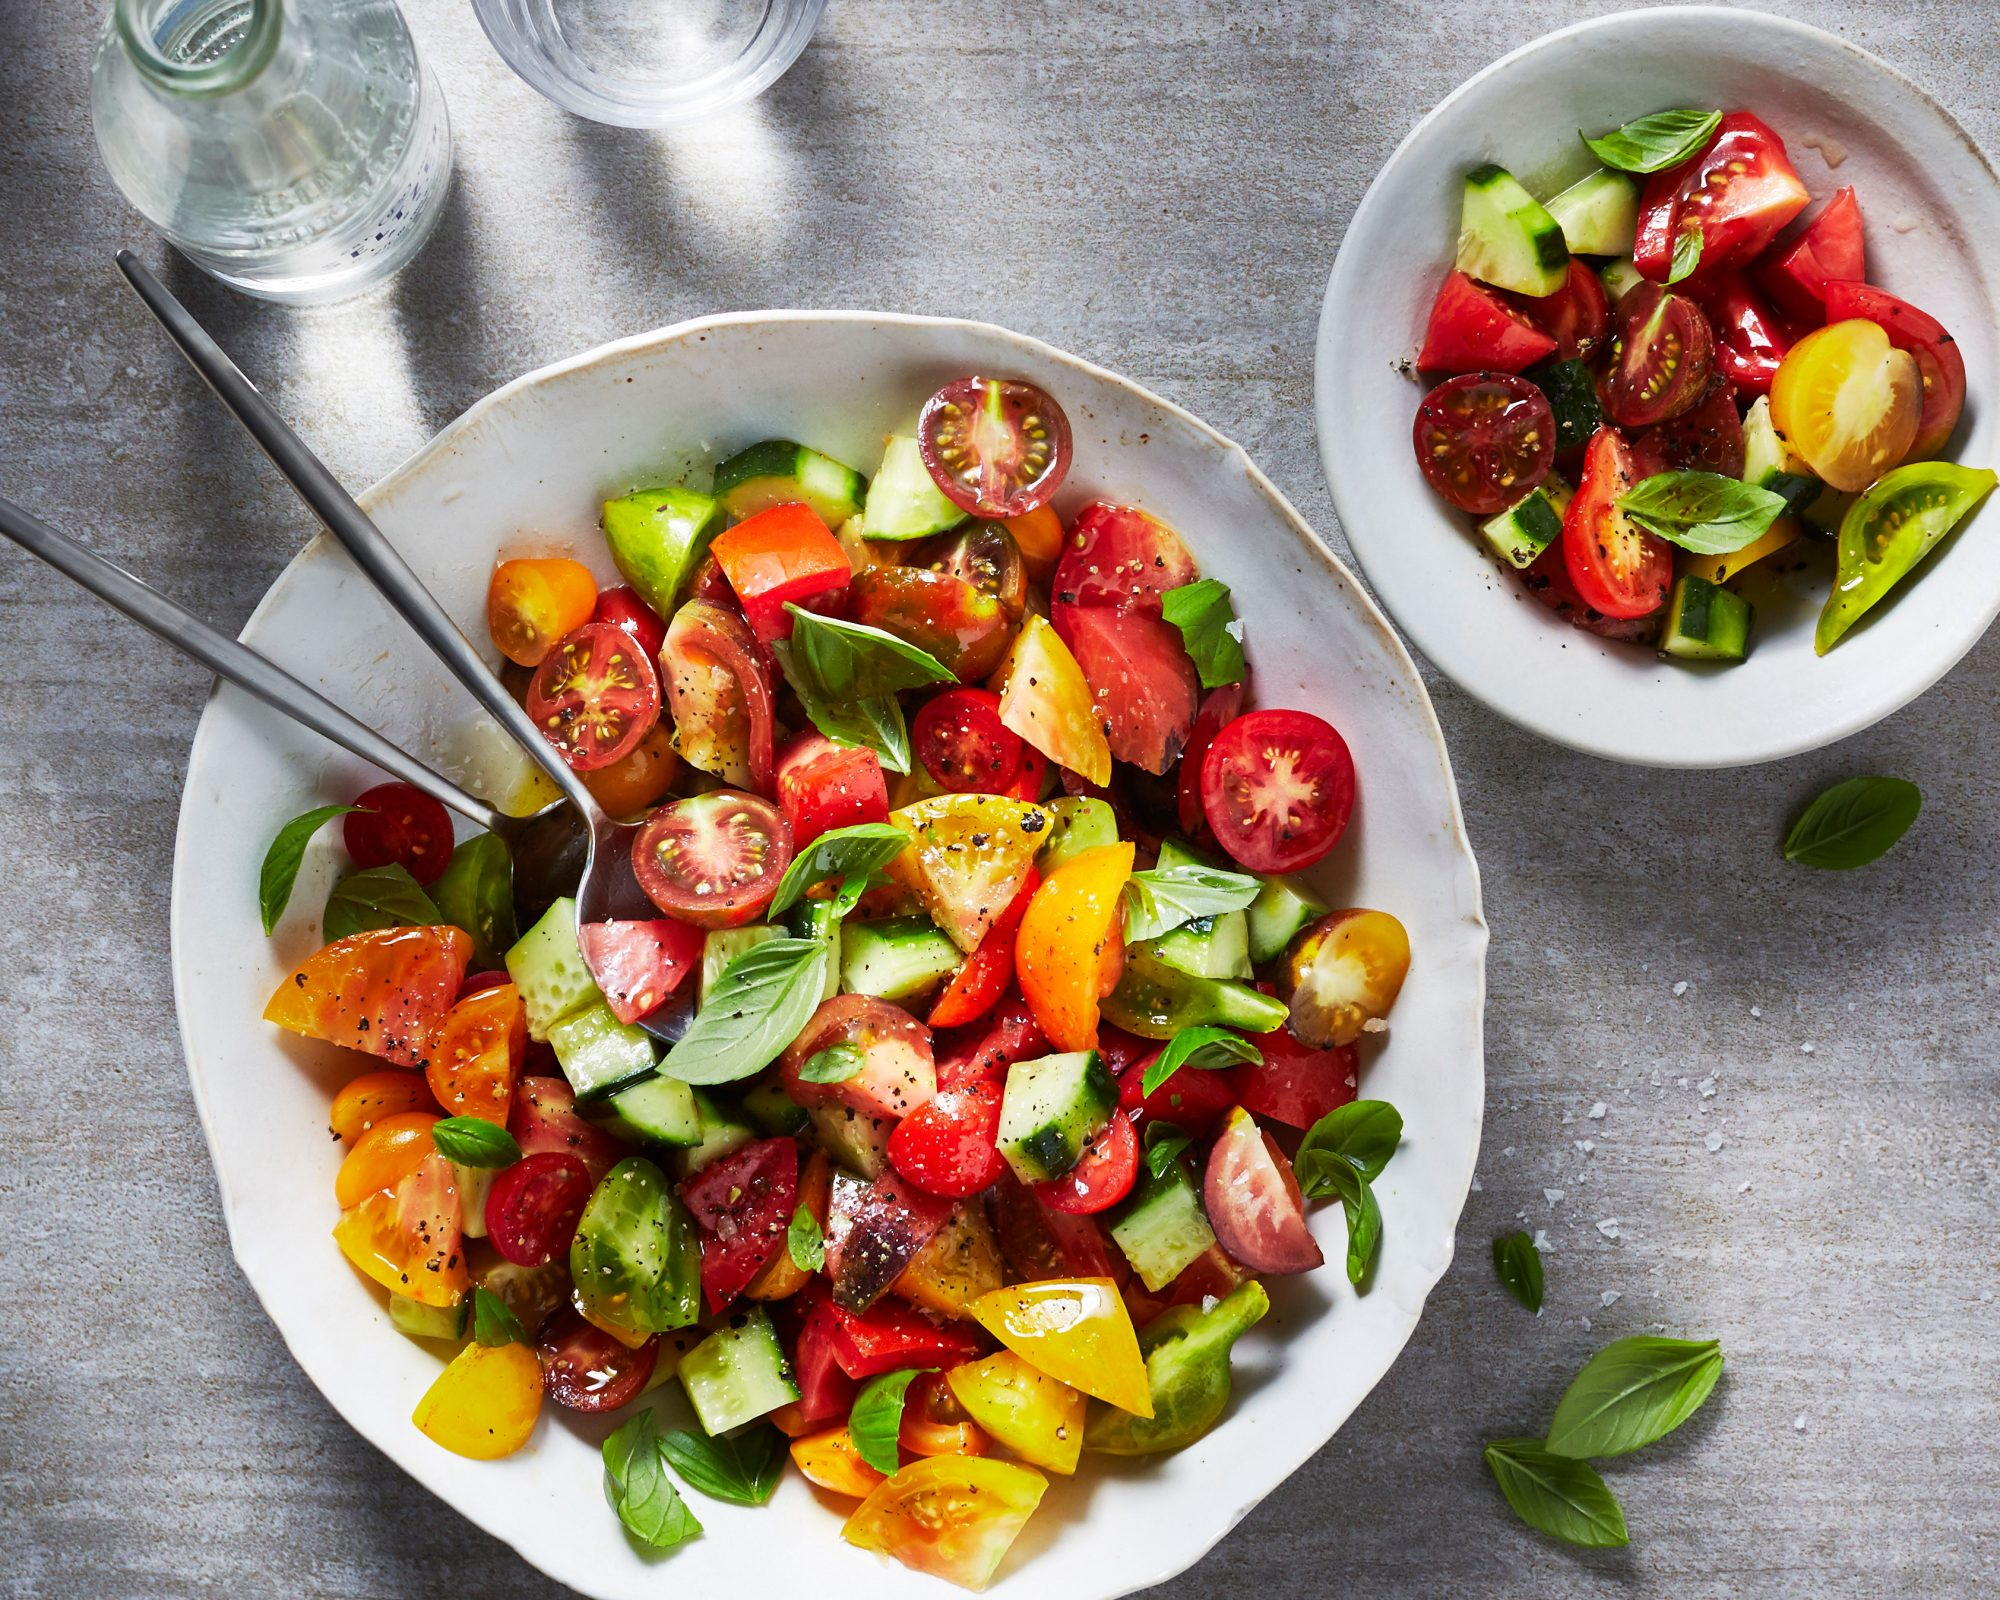 Tomato, Cucumber, and Basil Salad